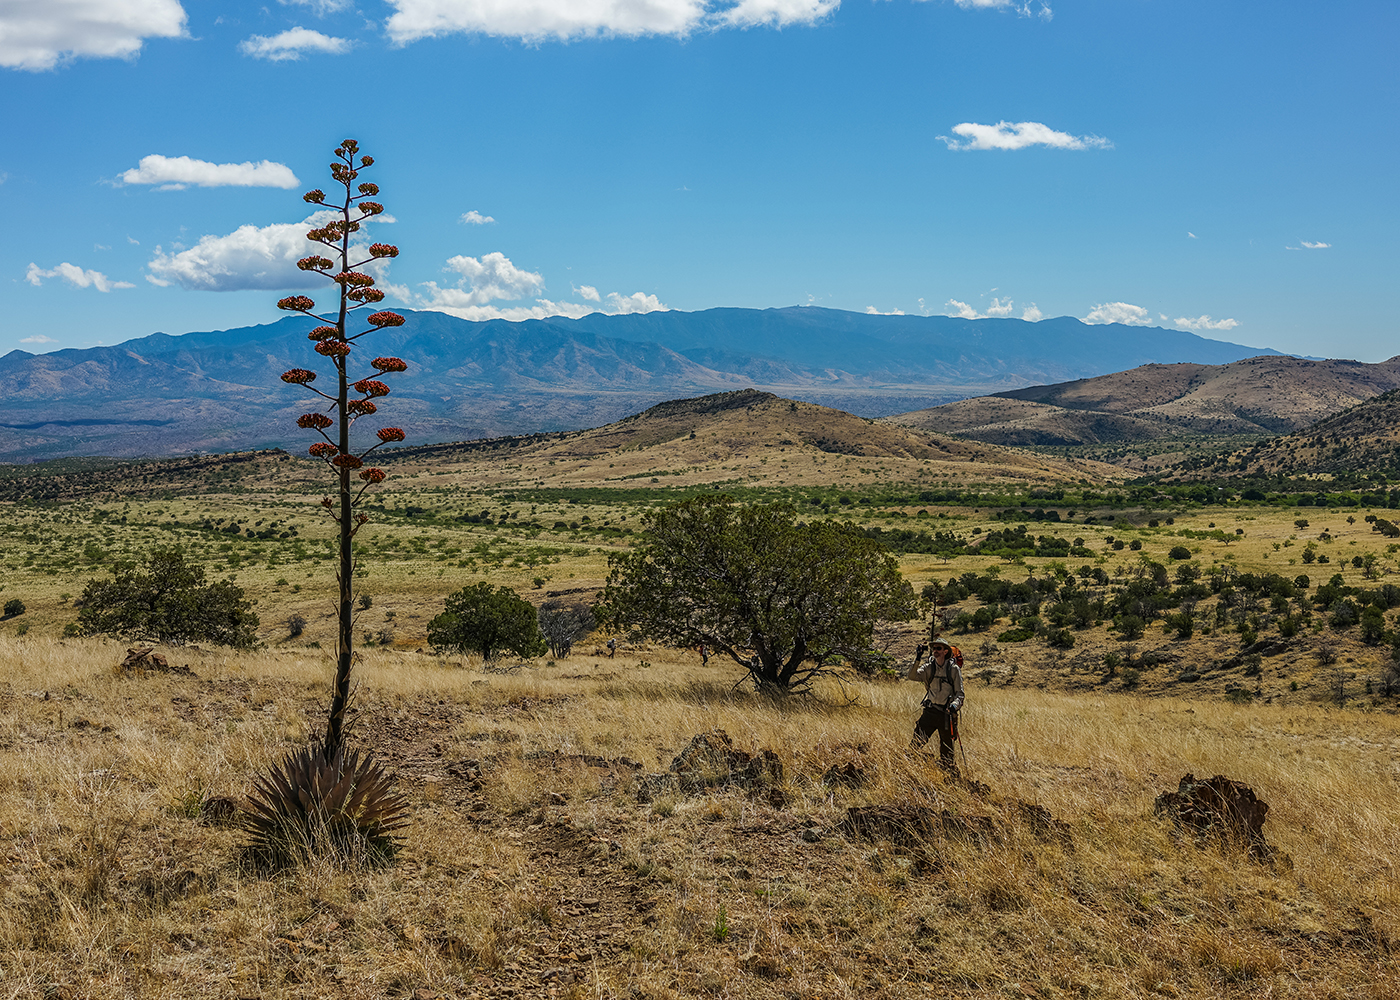 New Pioneer Travel >> Backpack the Galiuro Mountains & Redfield Canyon – Sierra Club